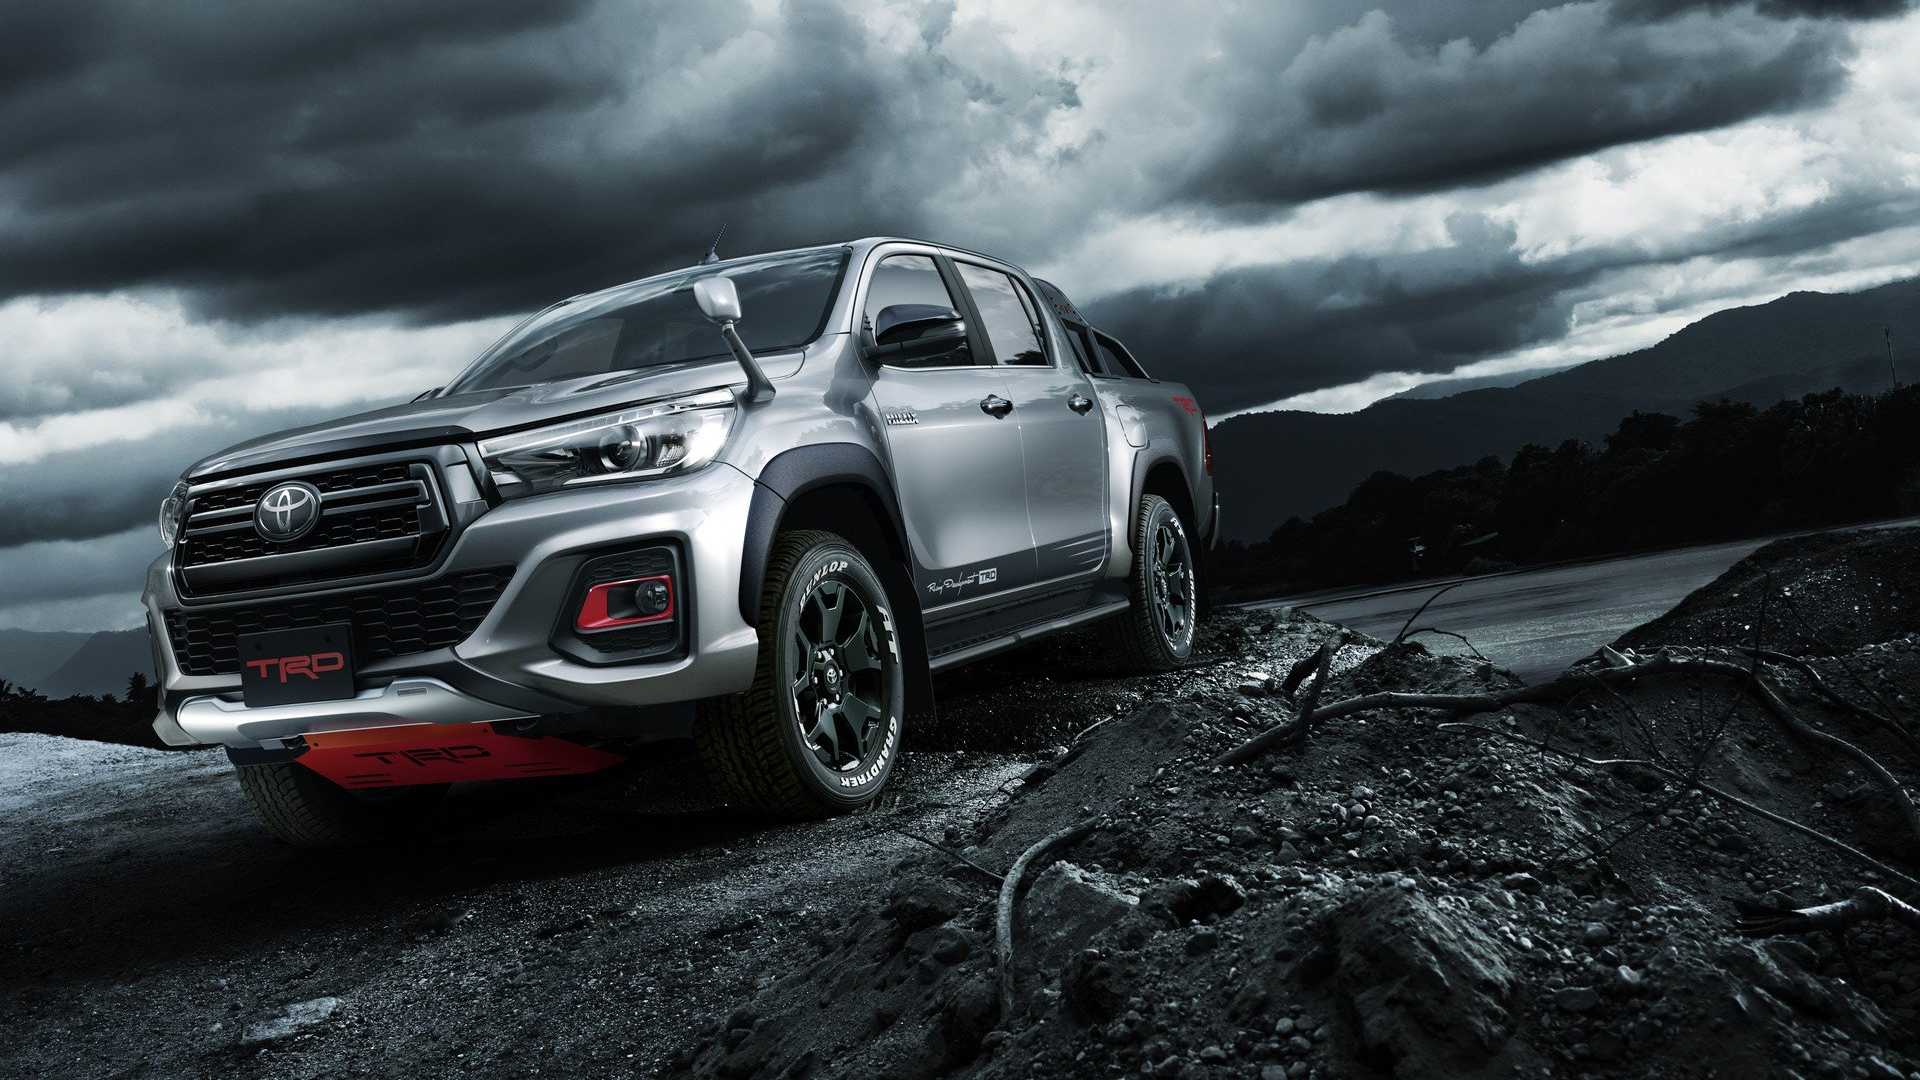 Toyota Hilux Black Rally Edition For Japan Bundles Trd Goodies